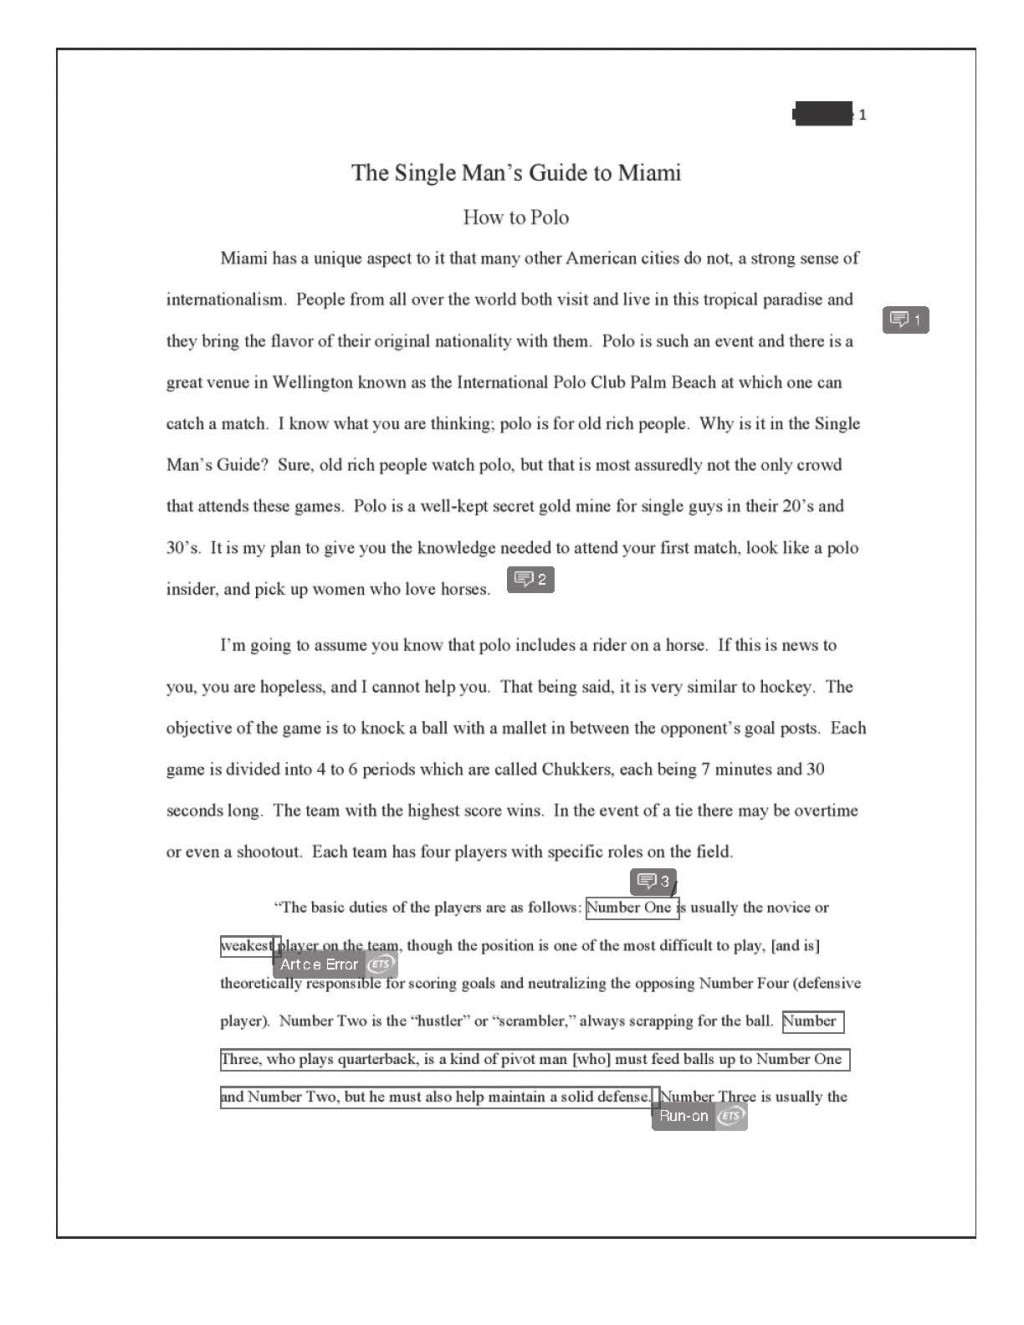 007 Informative Essay Kinds Of Writing Types Essays The Center In Hindi Final How To Polo Redacted P Pdf Task Slideshare Ppt Withs Wikipedia Dreaded Graphic Organizer Middle School Rubric 6th Grade Topics Large